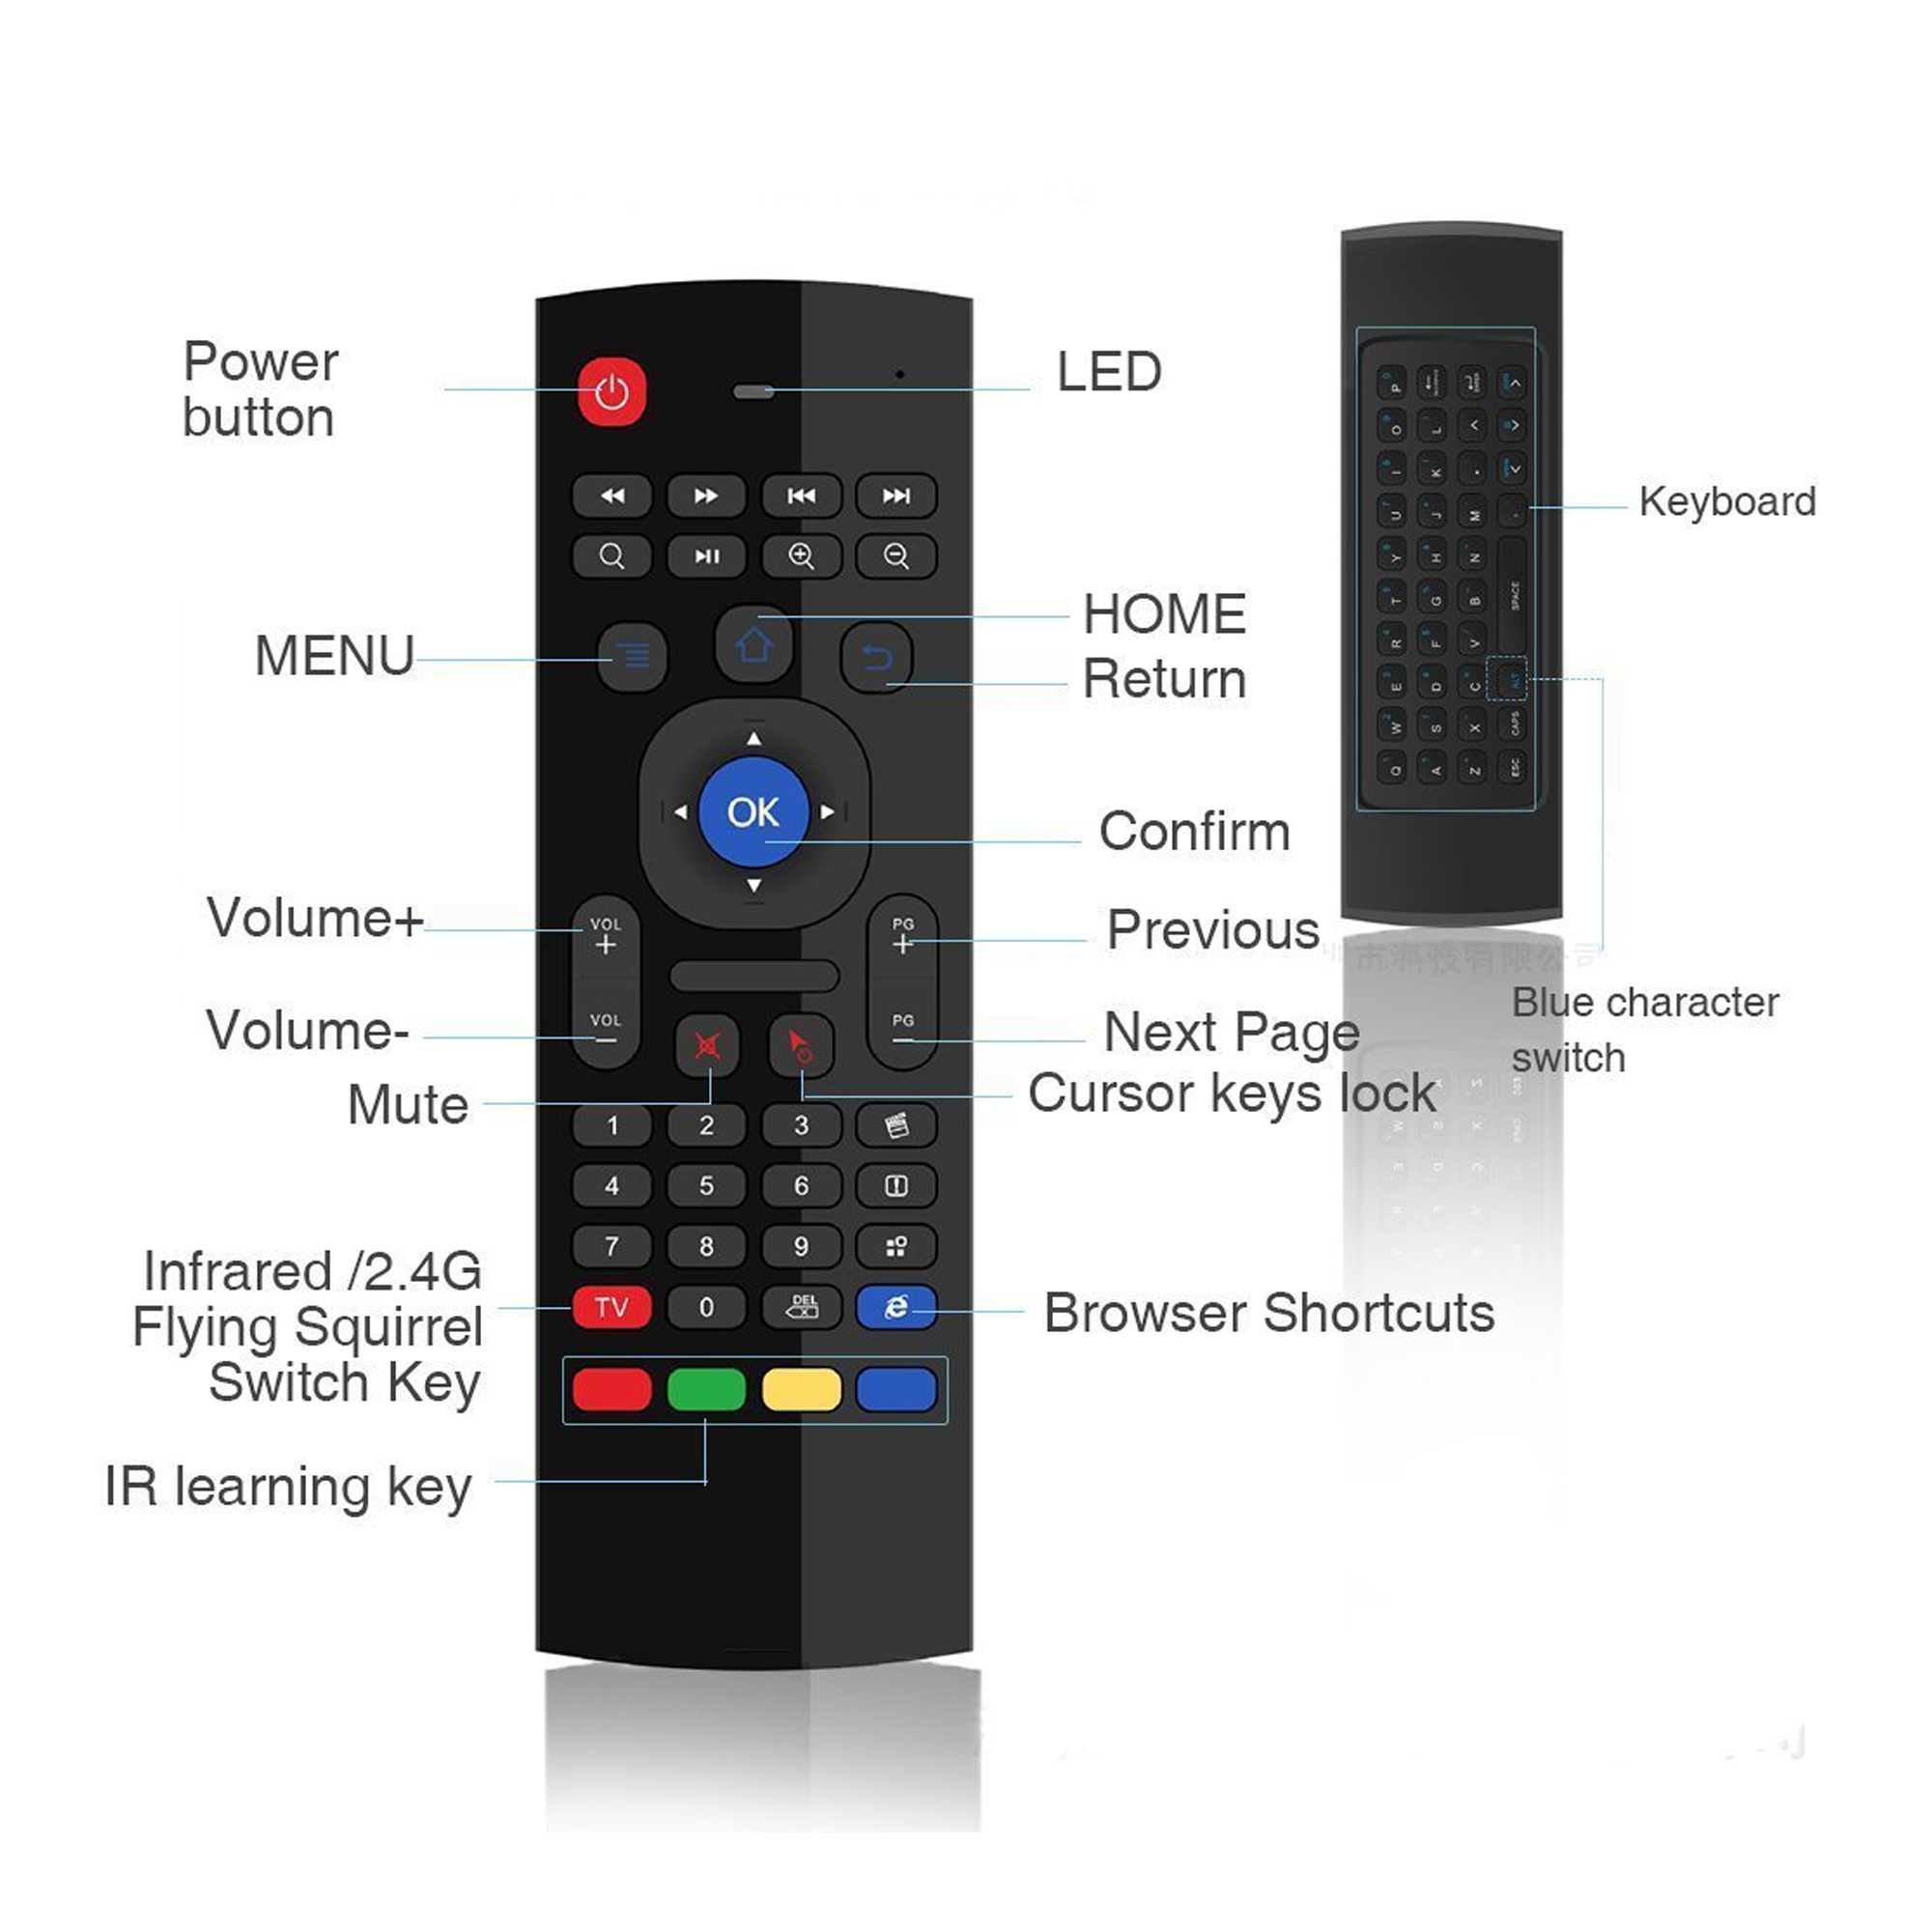 MX III 2.4G Wireless Remote Control Keyboard and Remote Controller Air Mouse for mini PC HTPC Android TV box, Piano Finish, Black - image 2 of 3